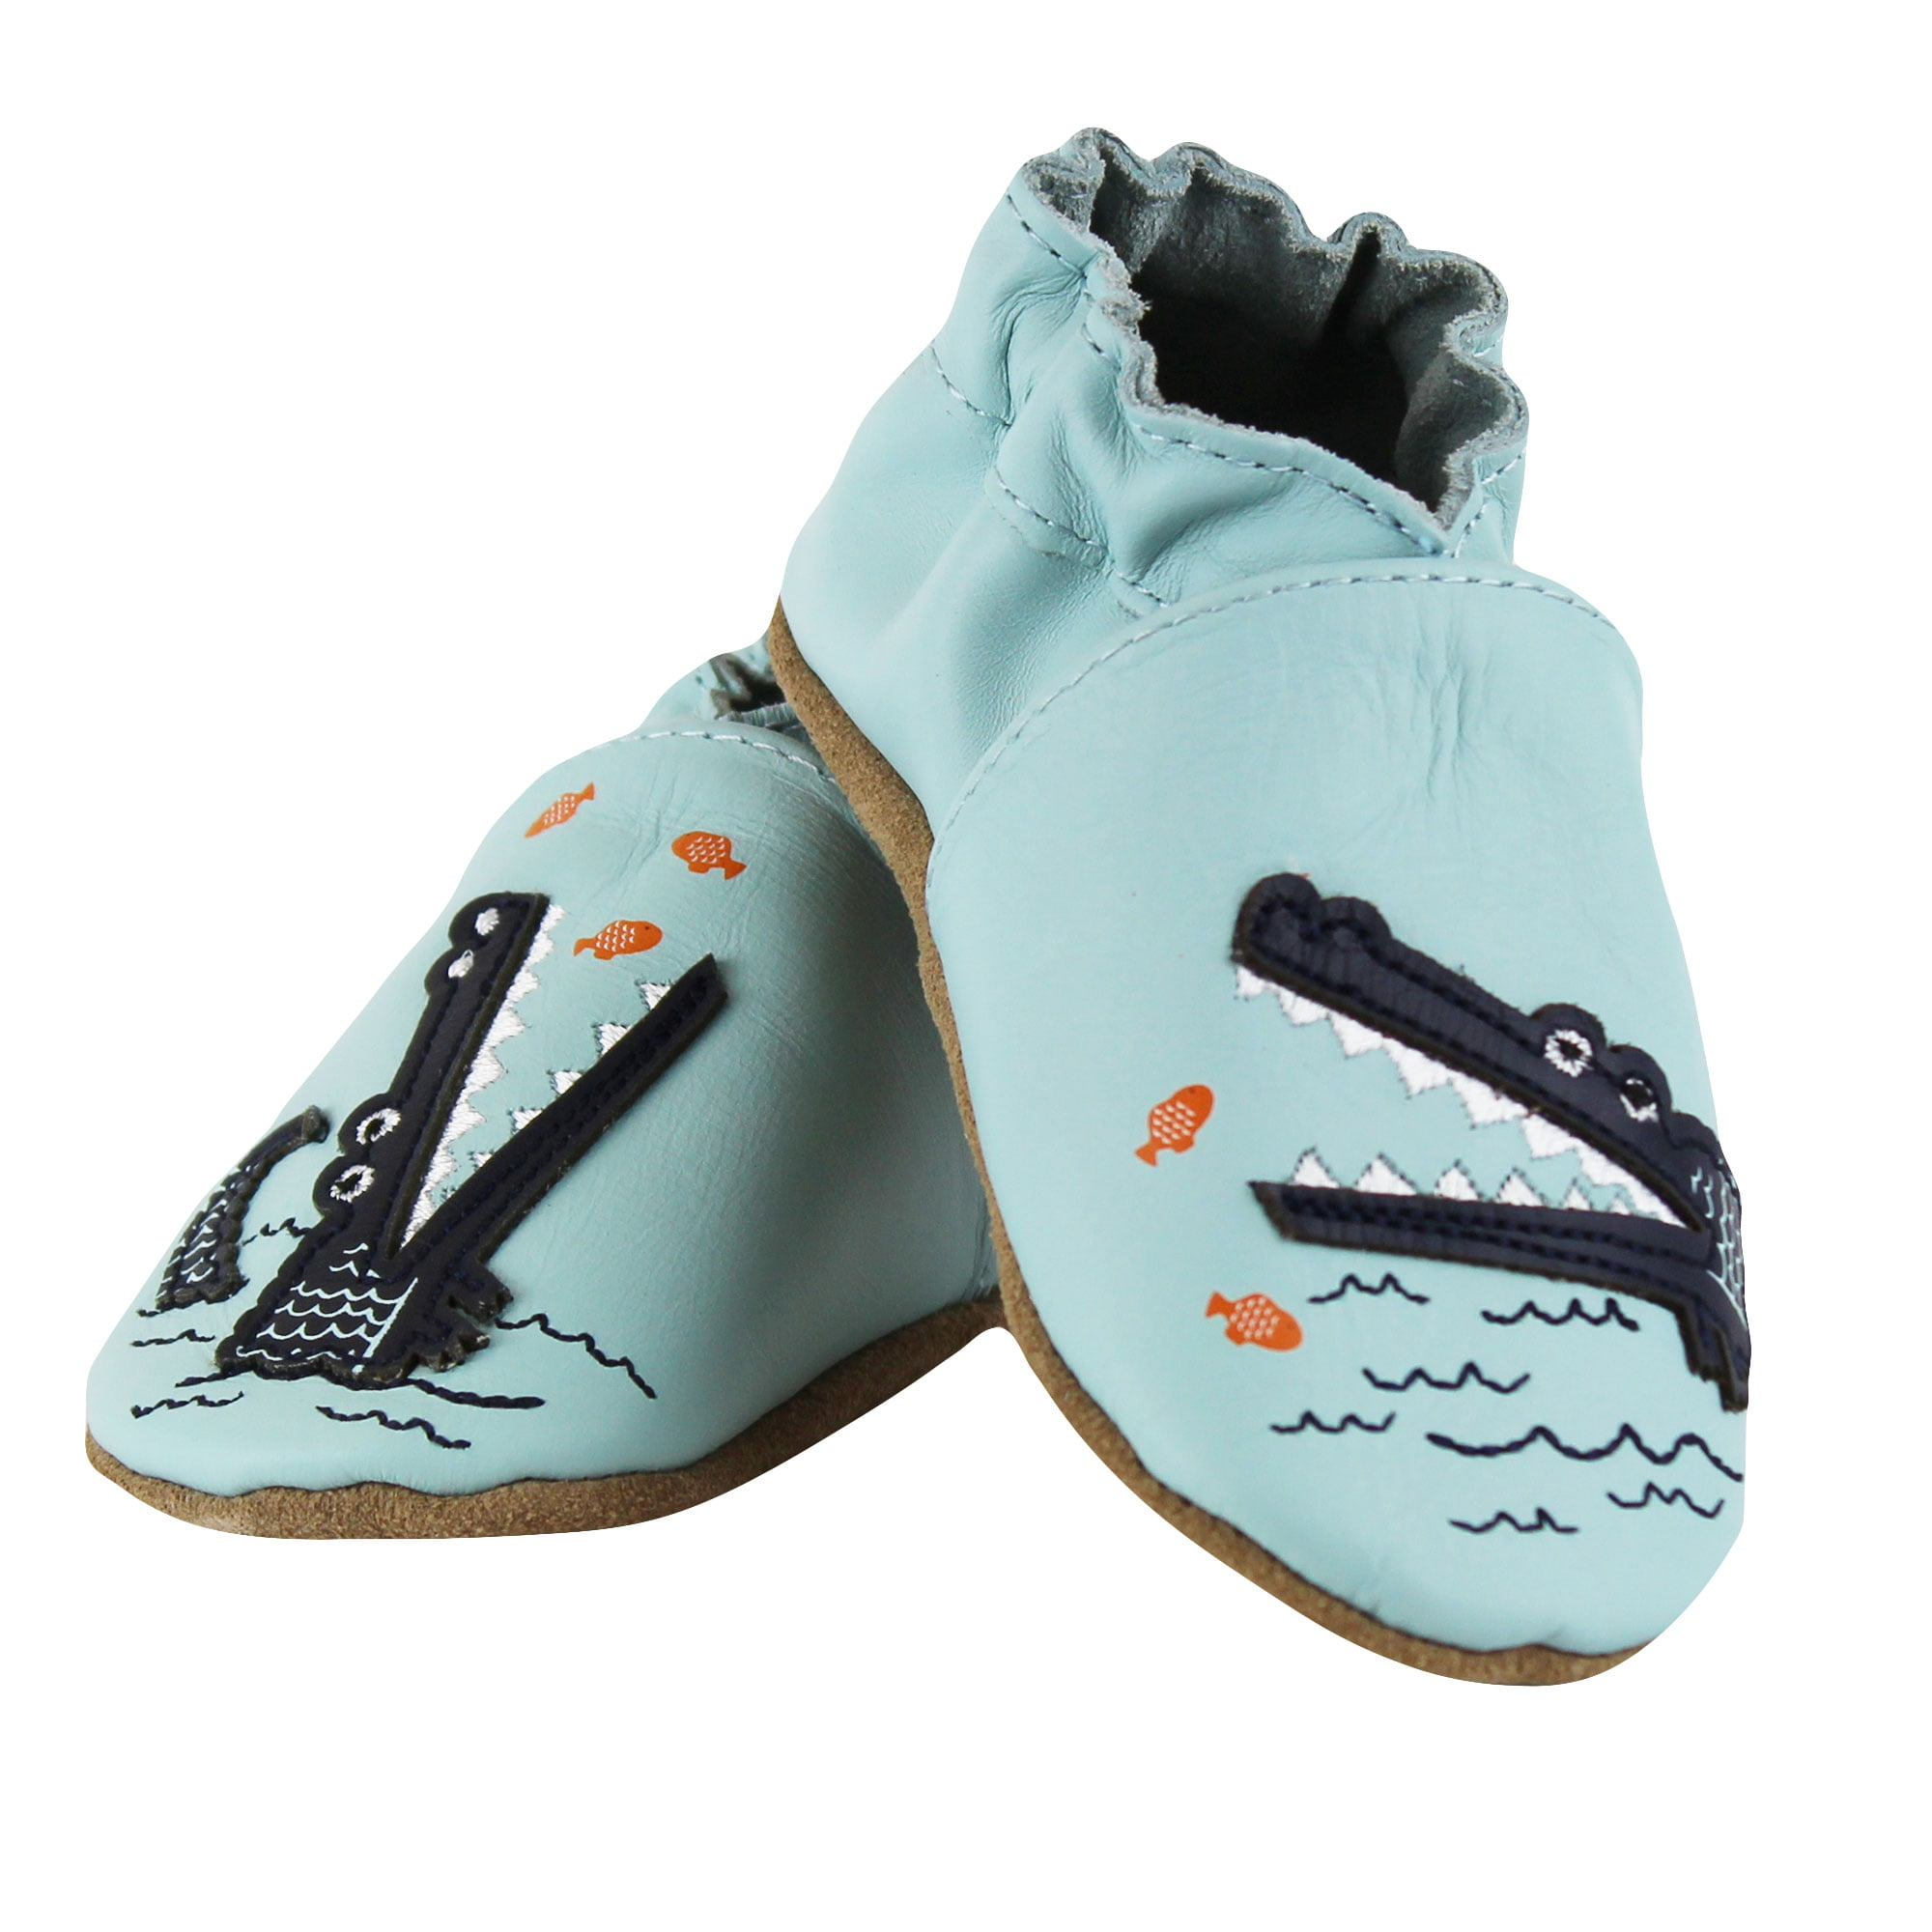 Robeez Baby Shoes at Macy's come in a variety of styles and sizes. Shop Robeez Baby Shoes at Macy's and find the latest styles for your little one today.